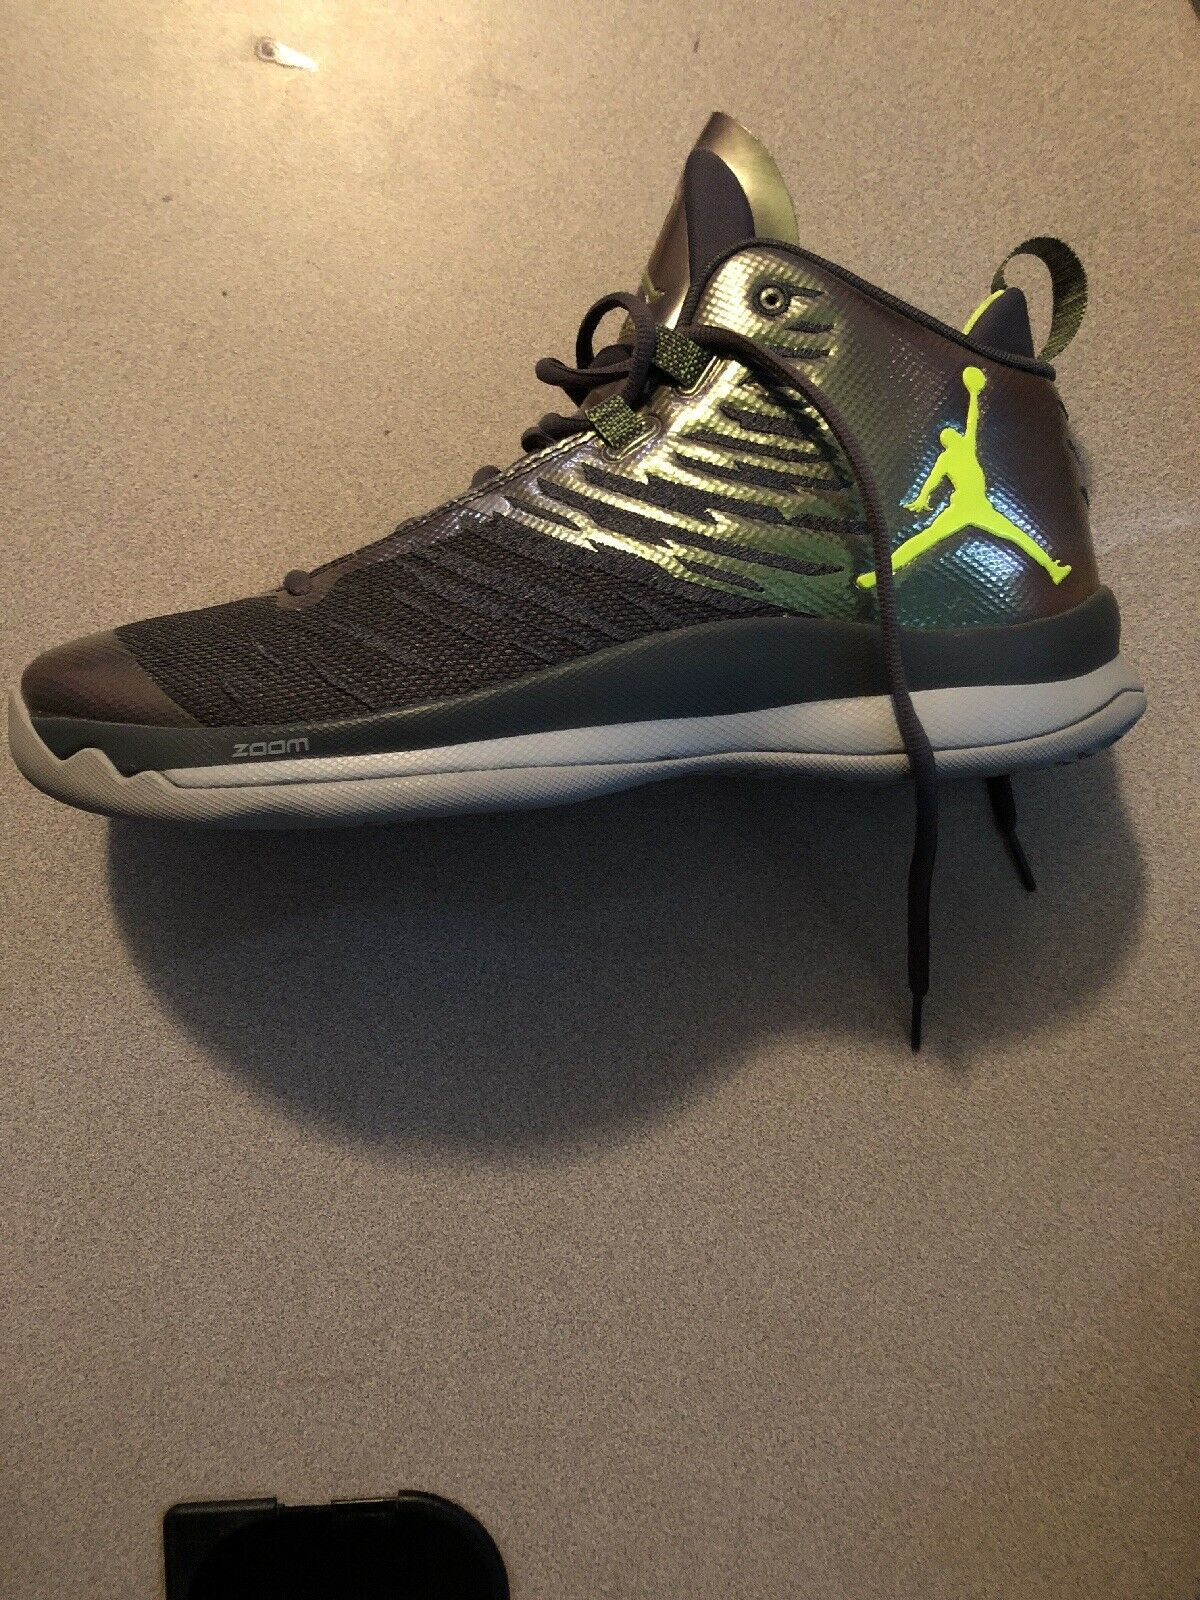 Nike Air Jordan Super.Fly 5 Dark Grey/Volt Basketball Shoes Size 11 Never Worn